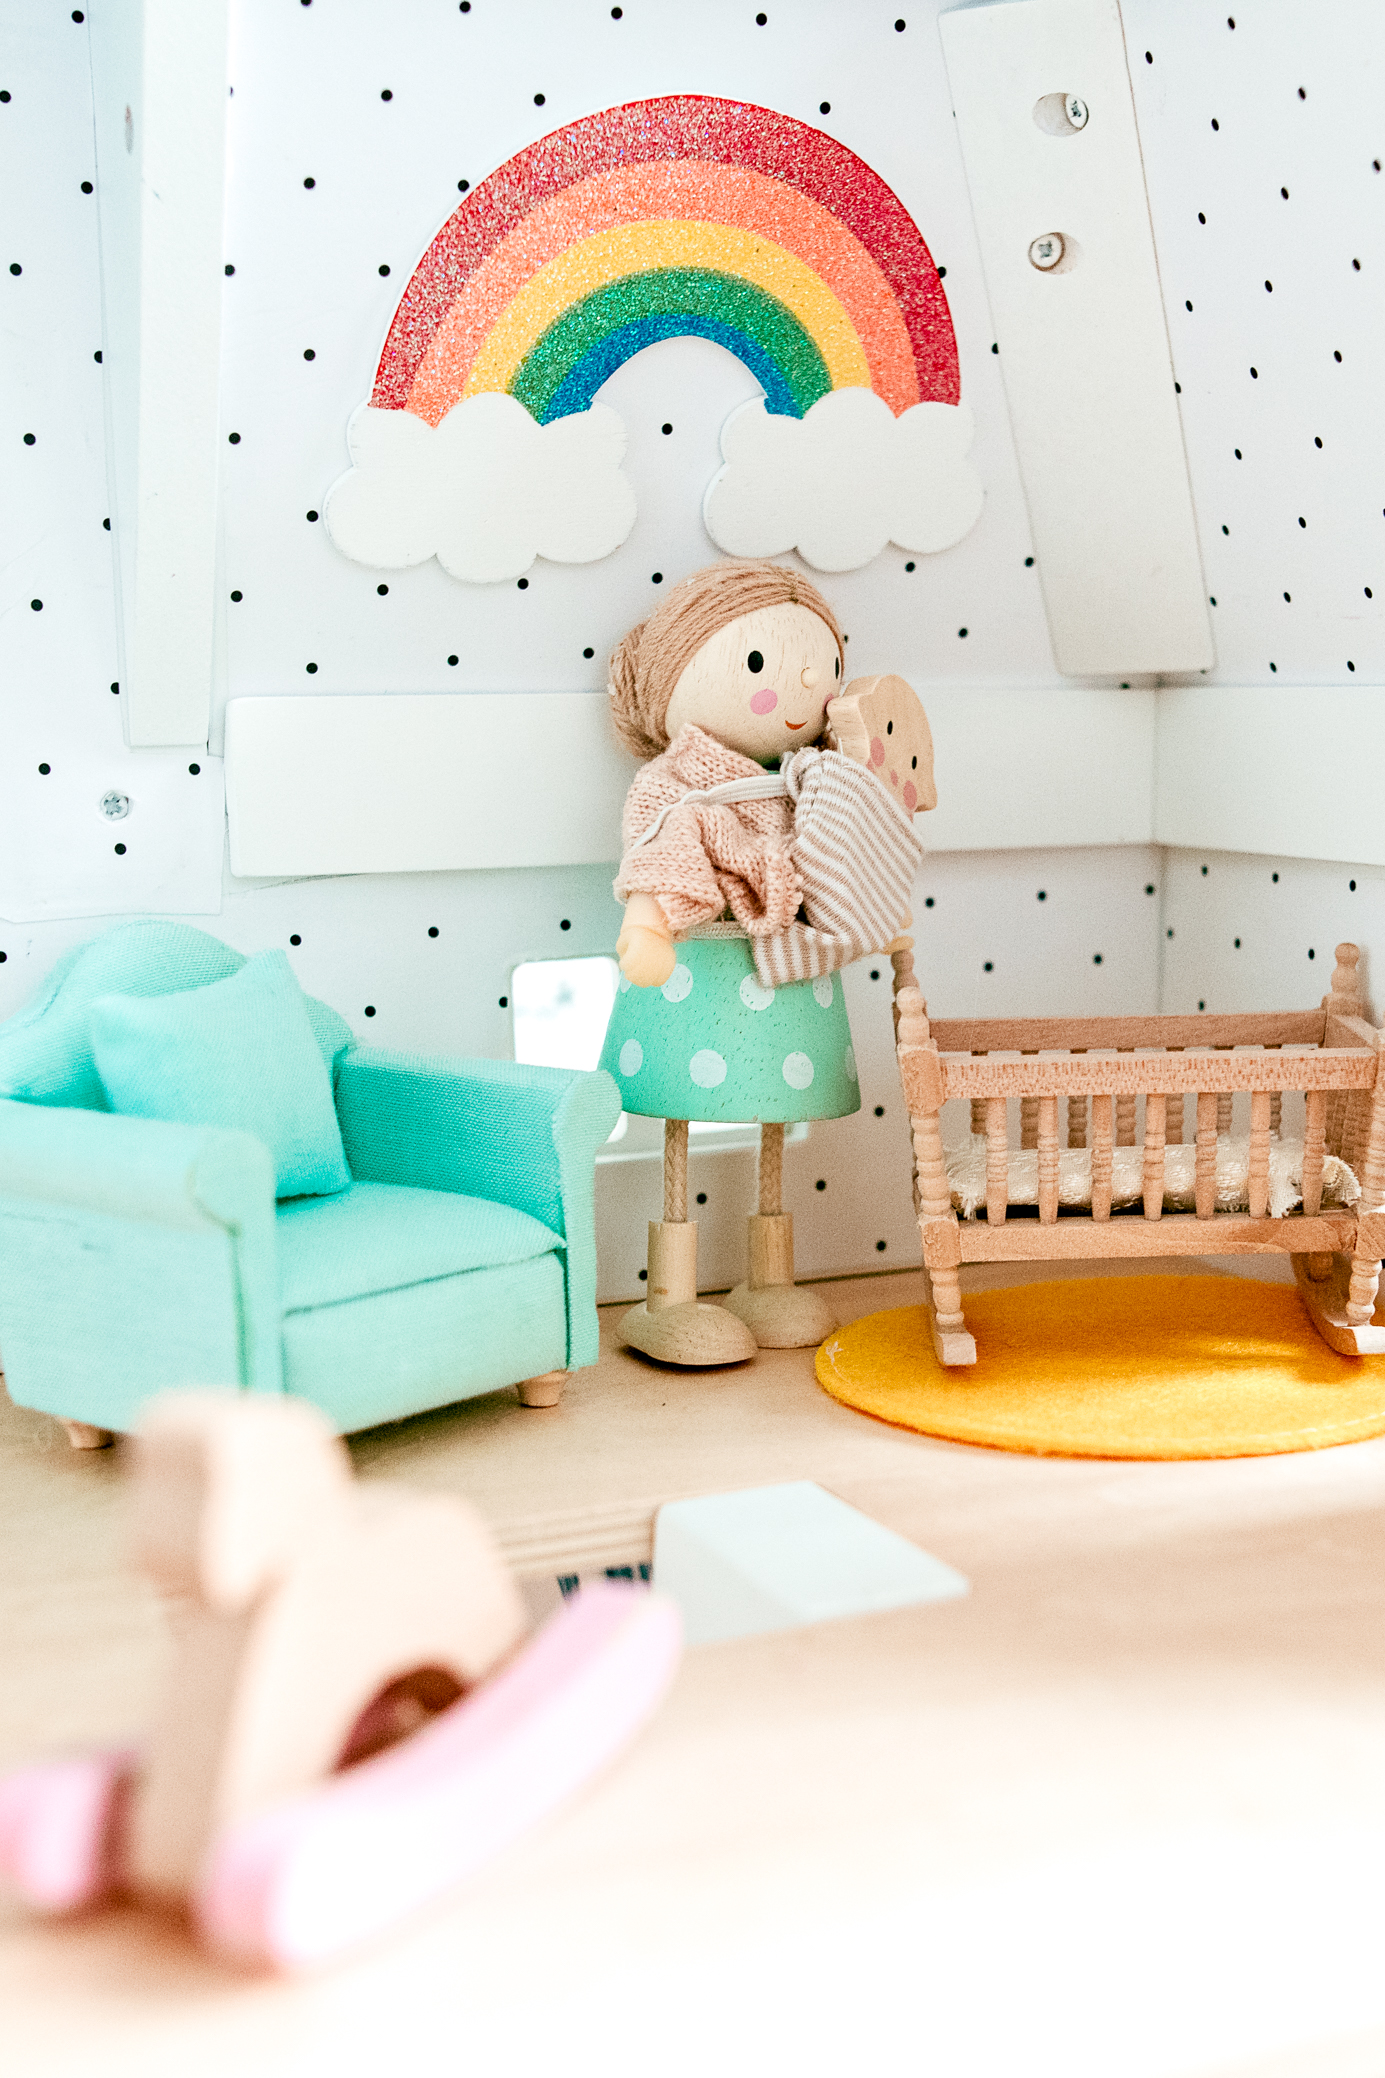 Dollhouse polka dot and rainbow nursery. Cute dollhouse dolls